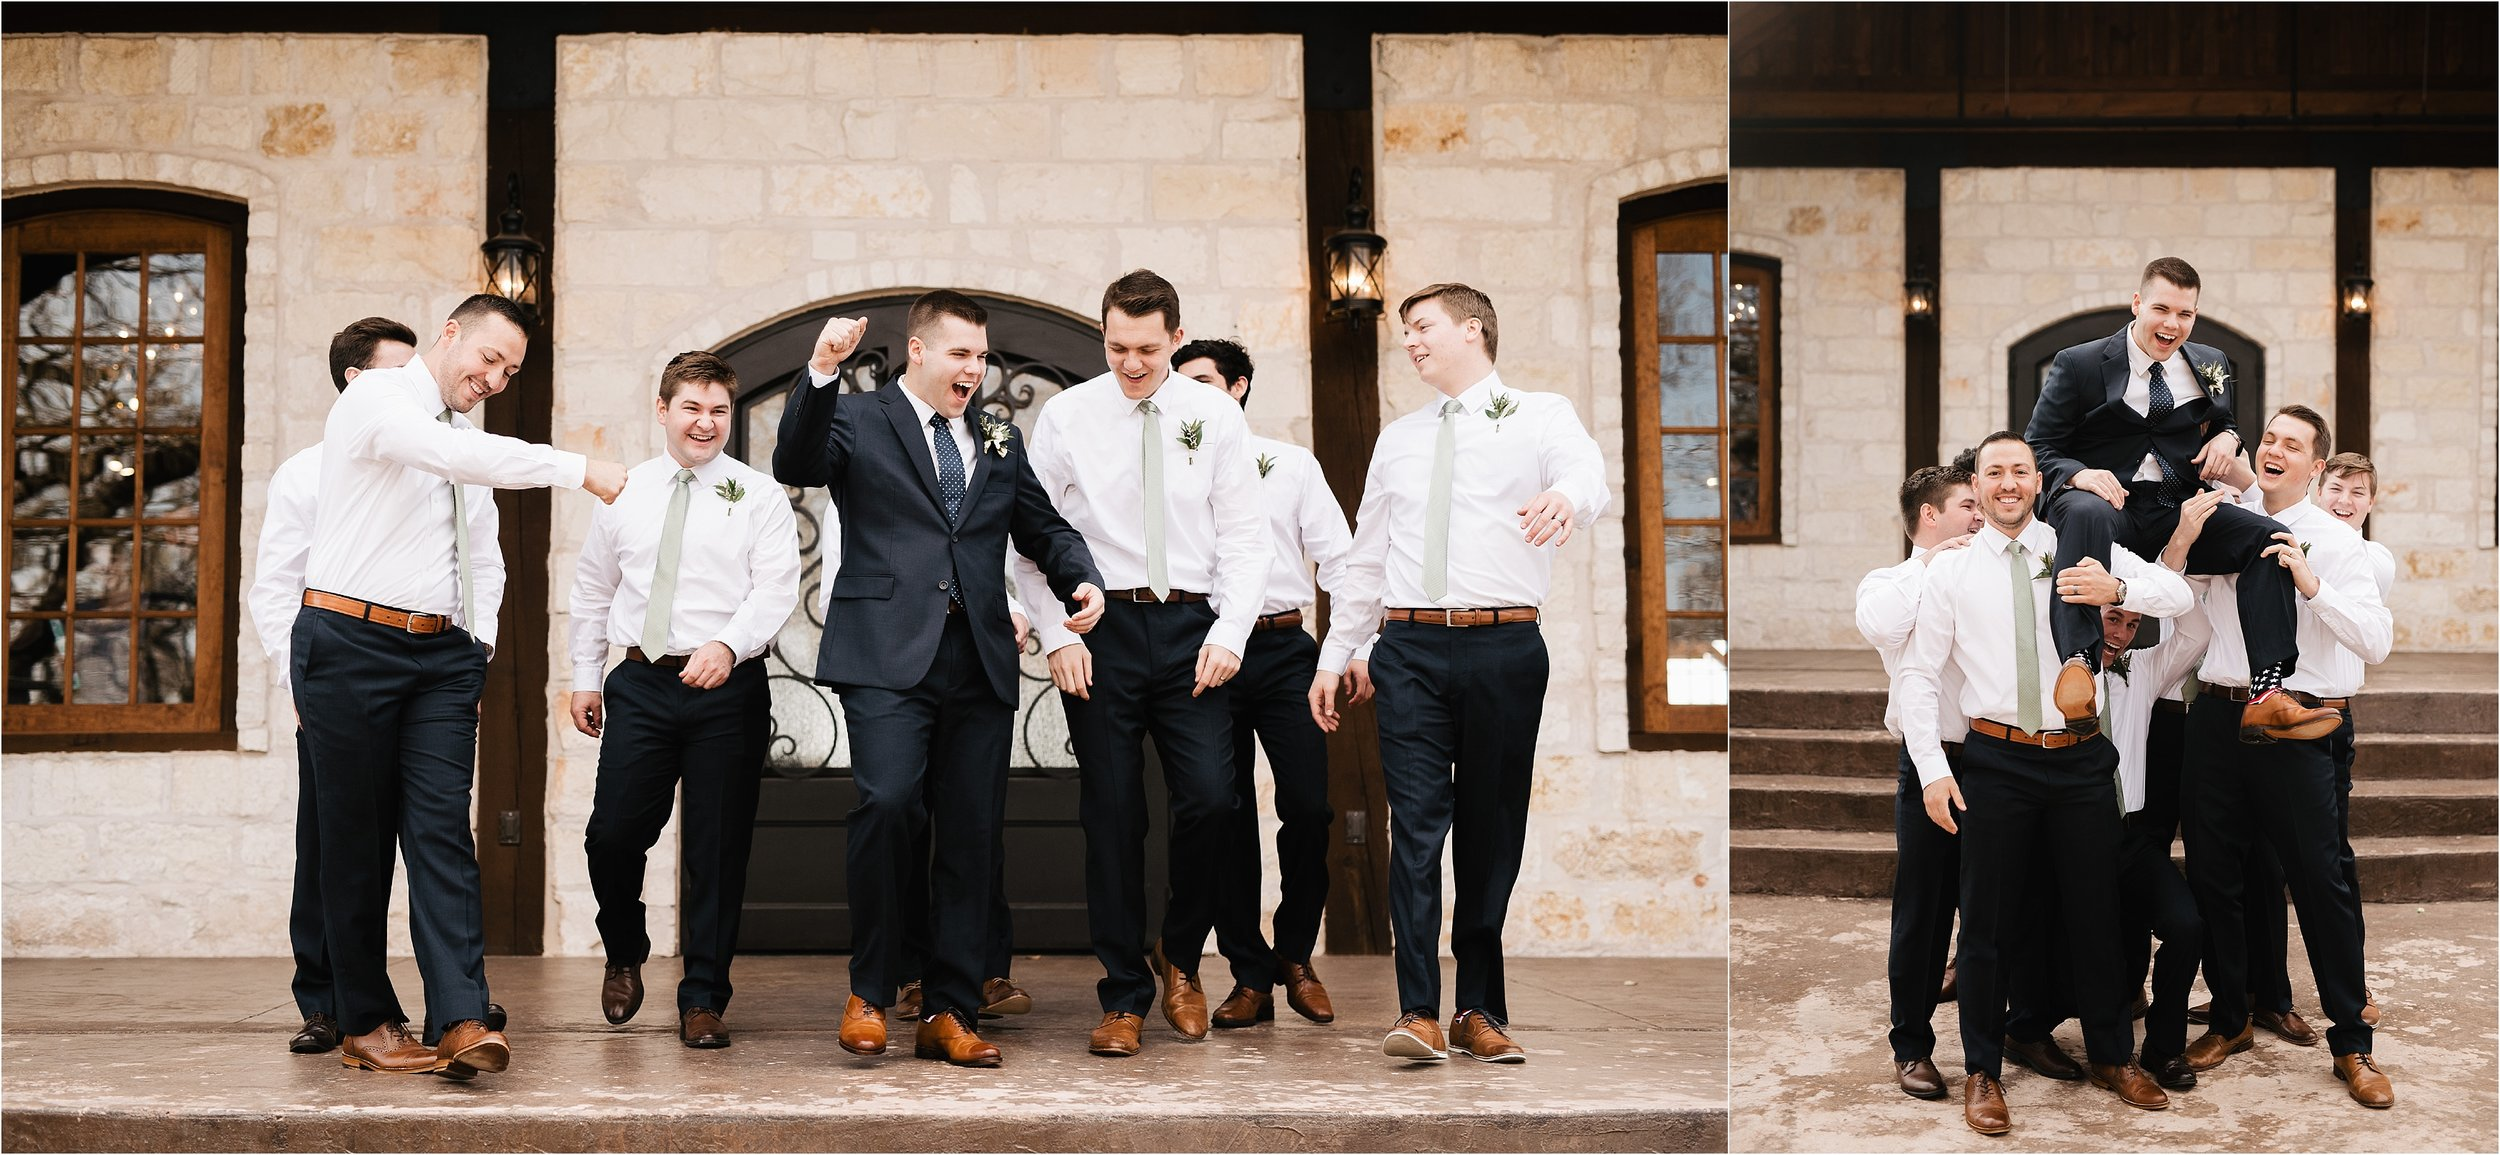 wedding portraits oklahoma wedding photographer outdoors wedding party bridesmaids groomsmen the springs norman